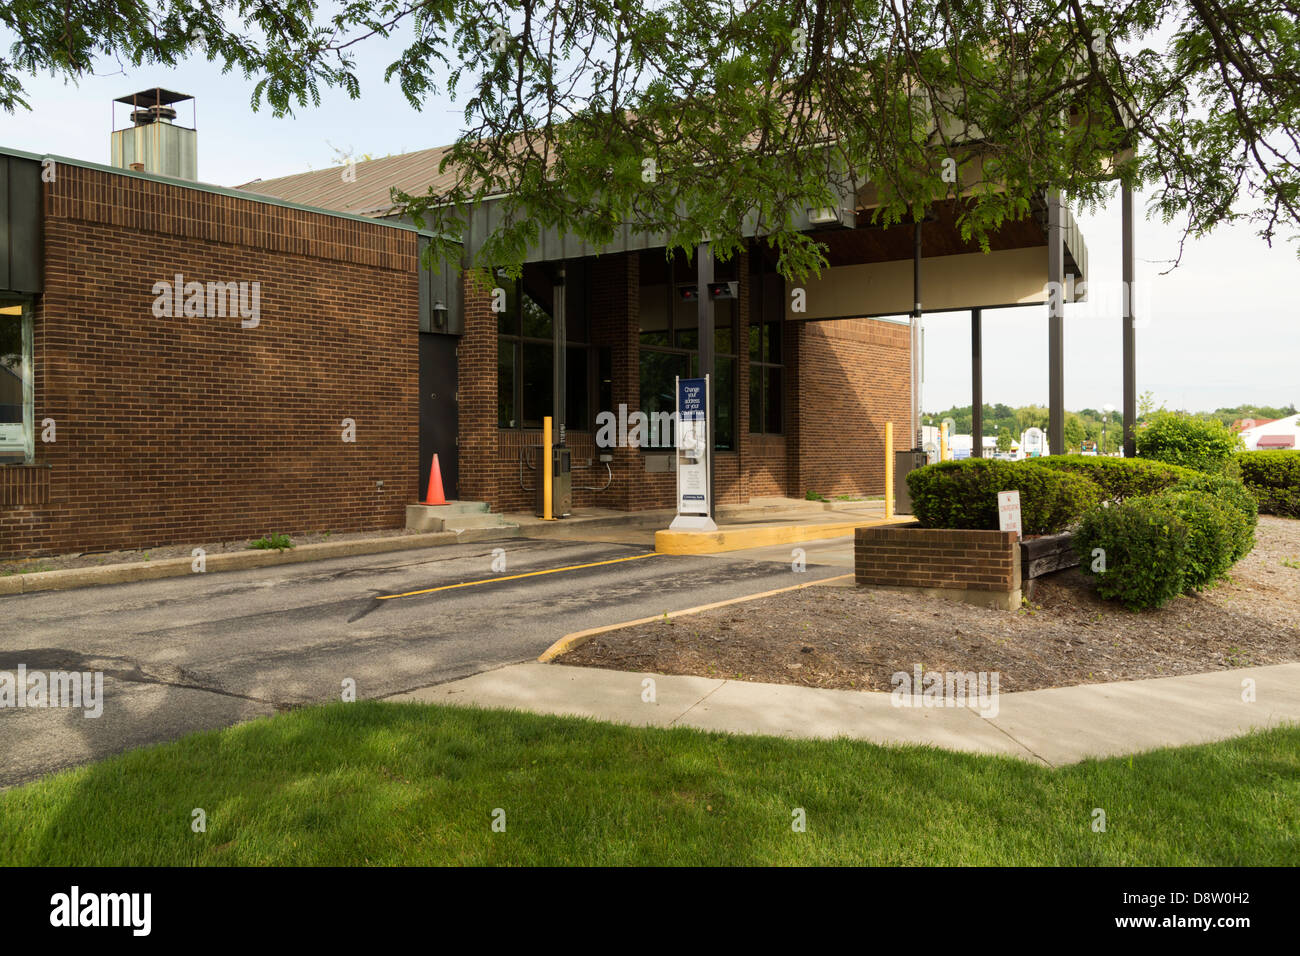 Drive Through Bank Stock Photos Images Comerica Wiring Instructions Banking At In Montague Michigan Usa Image